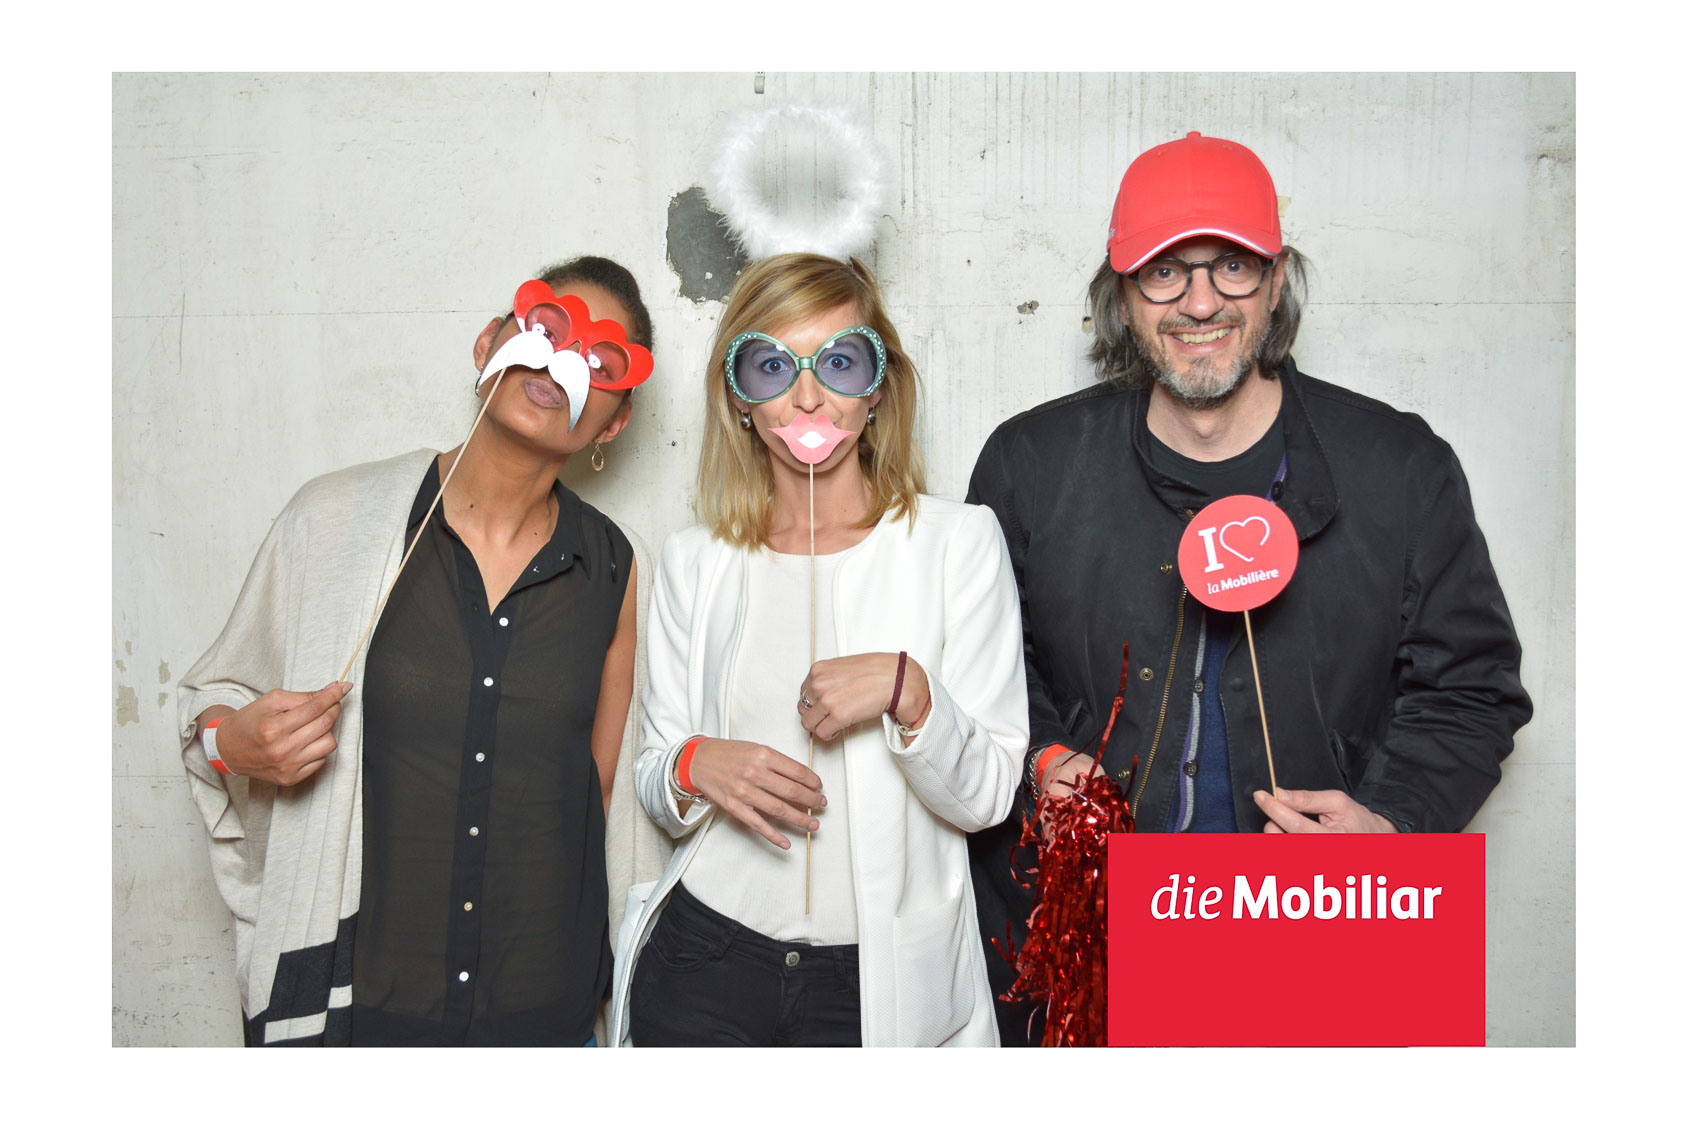 Photo-Booth-Baschung-Fotografie-Event-21.jpg